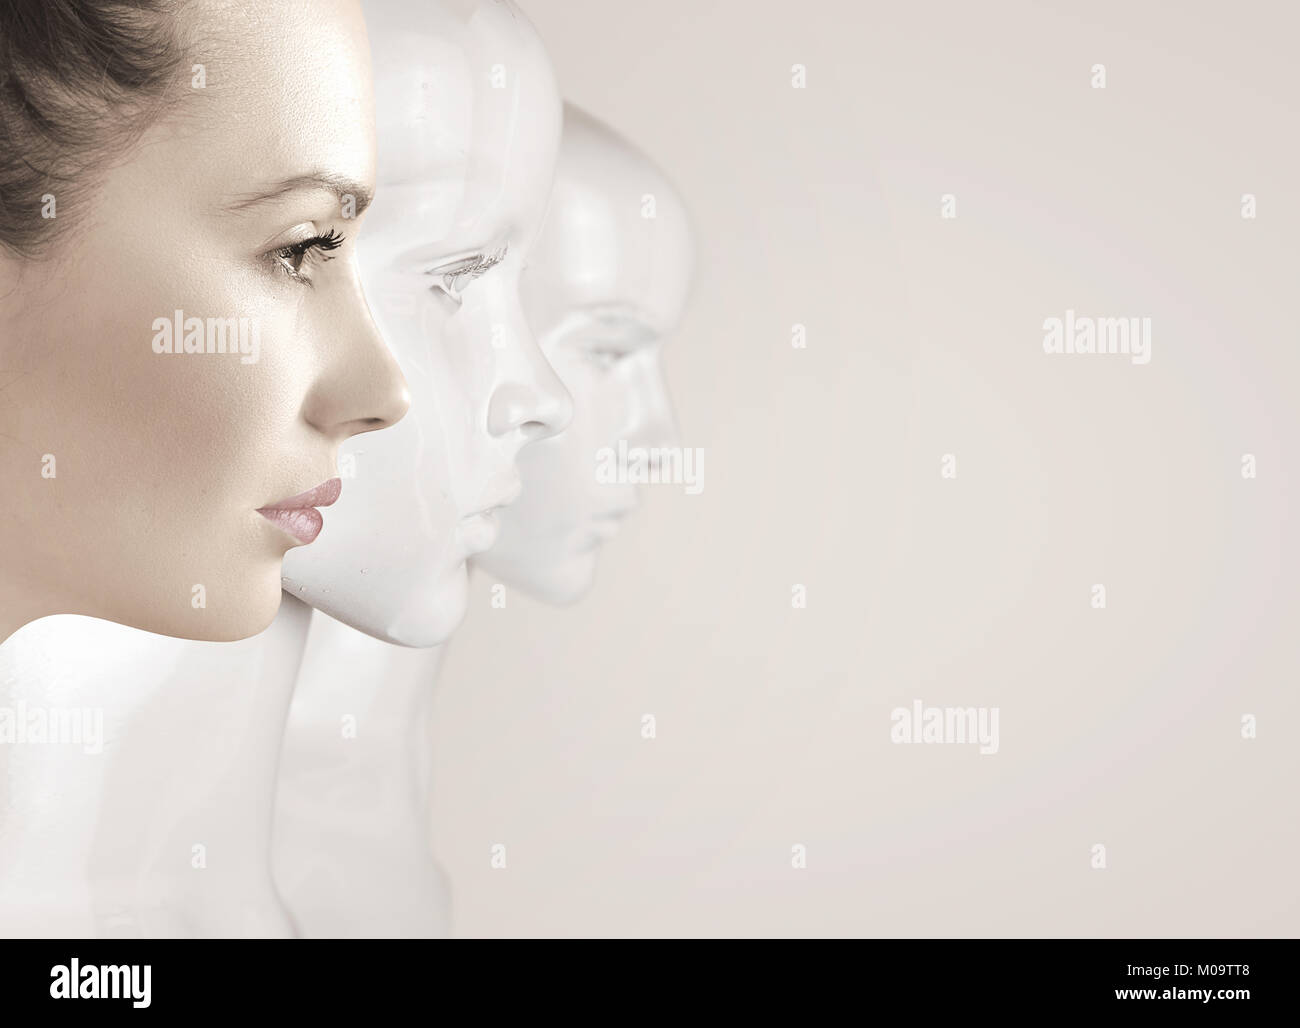 Femme et les robots - concept de l'intelligence artificielle Photo Stock